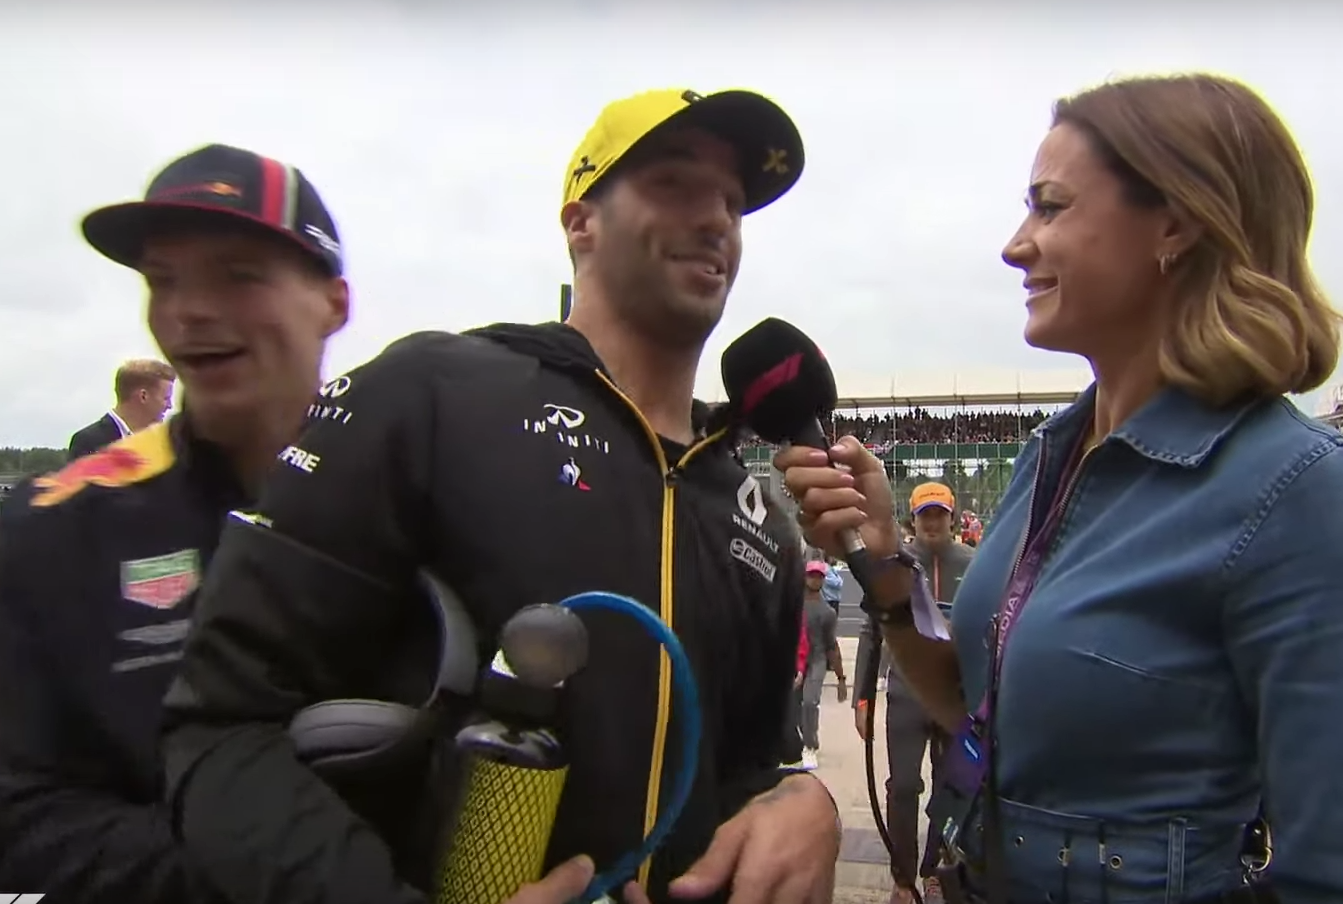 Max Verstappen Had A Surprise For Daniel Ricciardo Before The Race